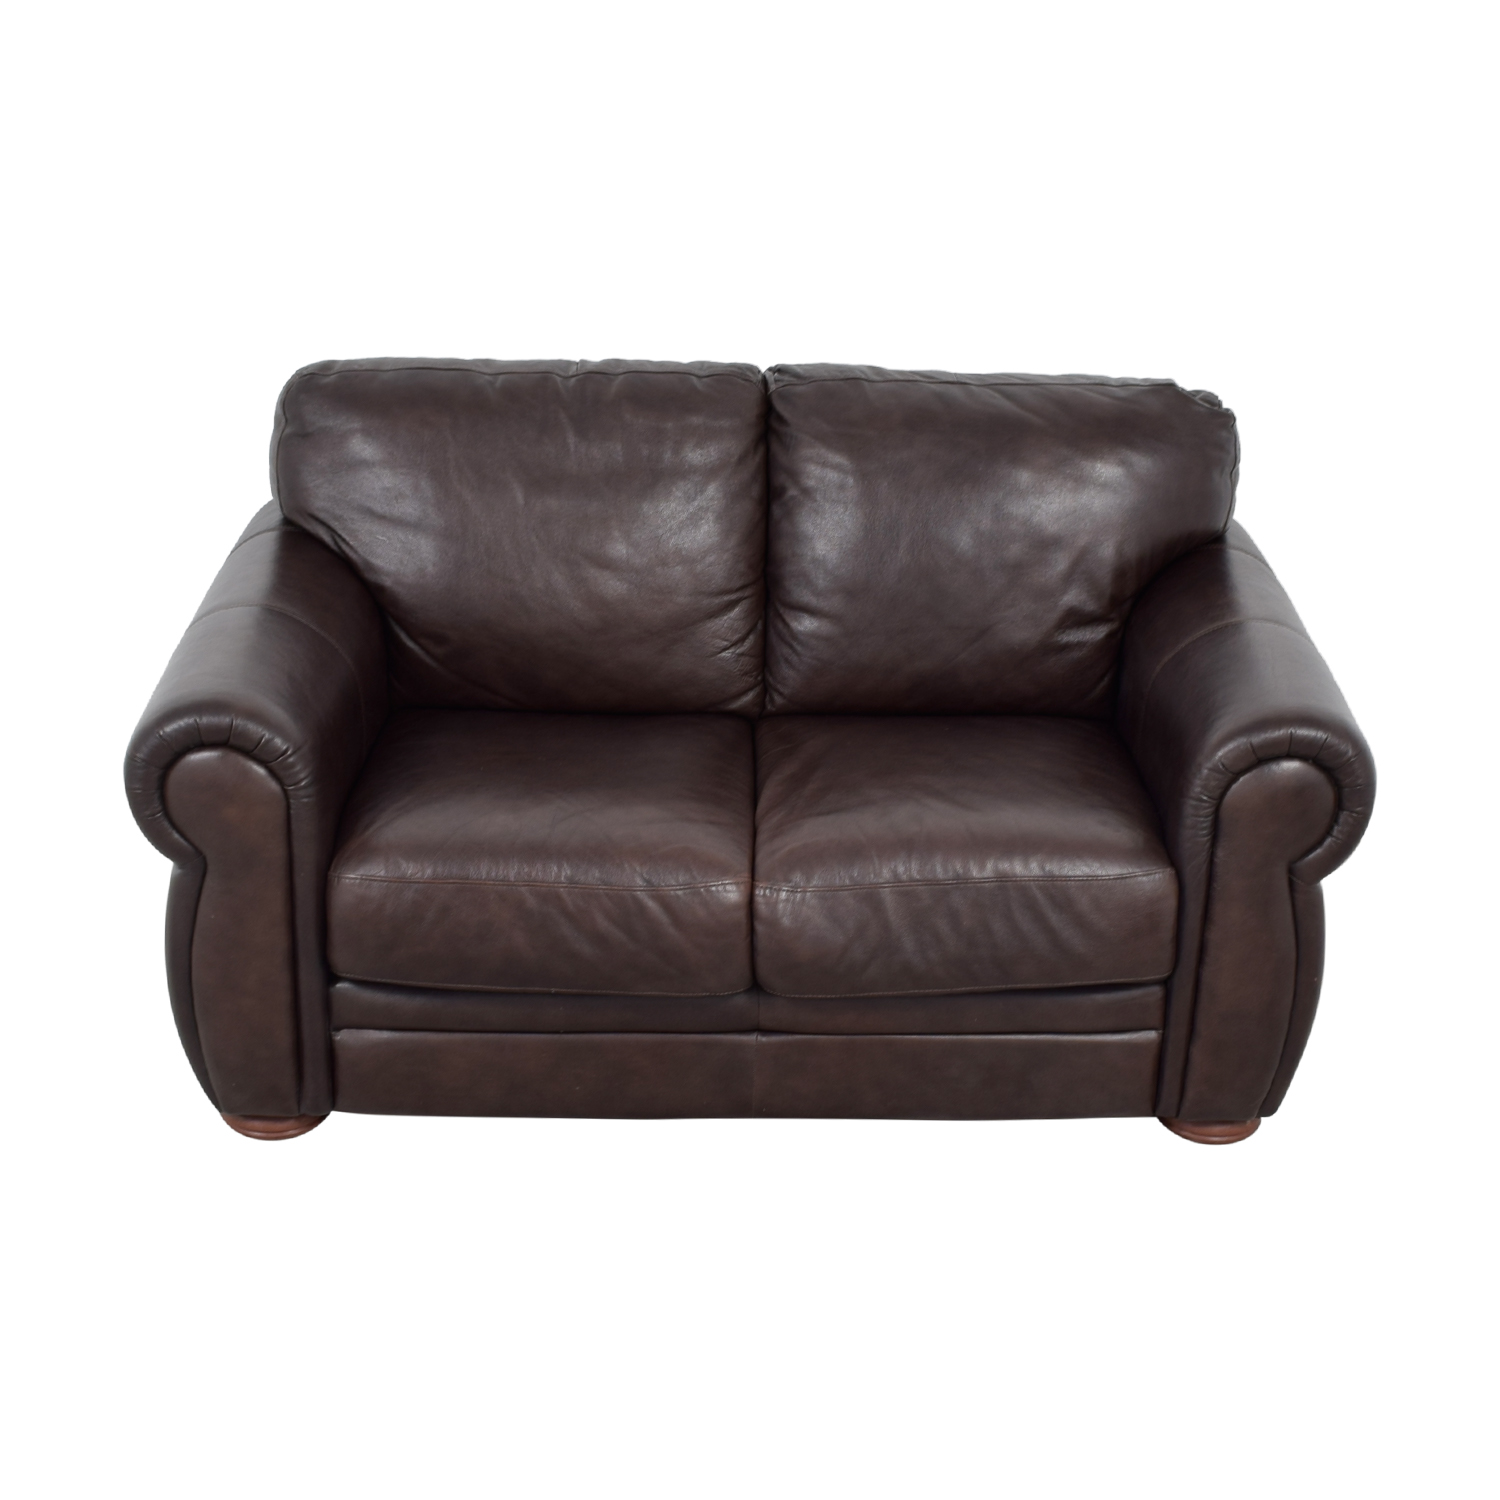 buy Raymour & Flanigan Brown Leather Two-Cushion Sofa Raymour & Flanigan